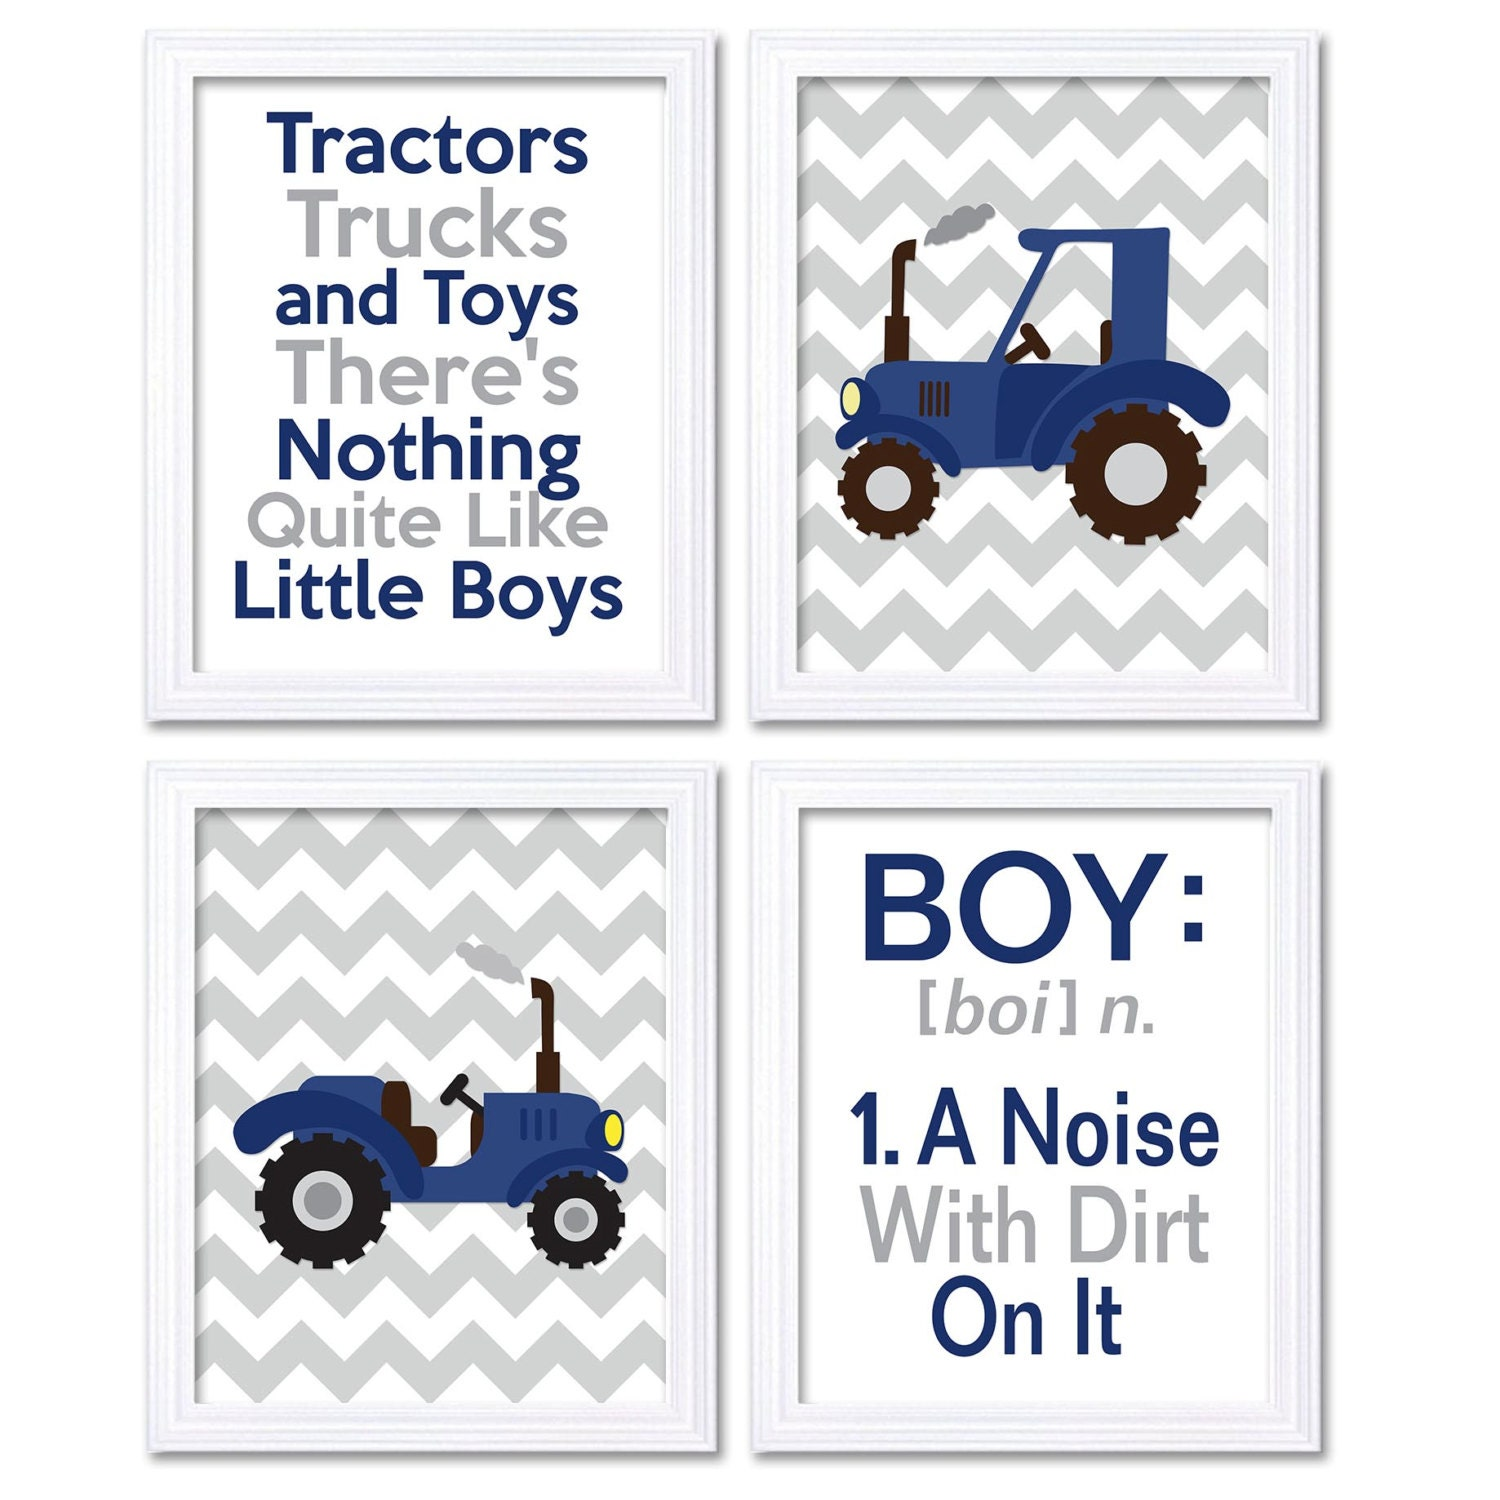 Nursery Art Tractors Trucks Toys Theres Nothing Quite Like Little Boys Prints Set of 4 Navy Blue Gre